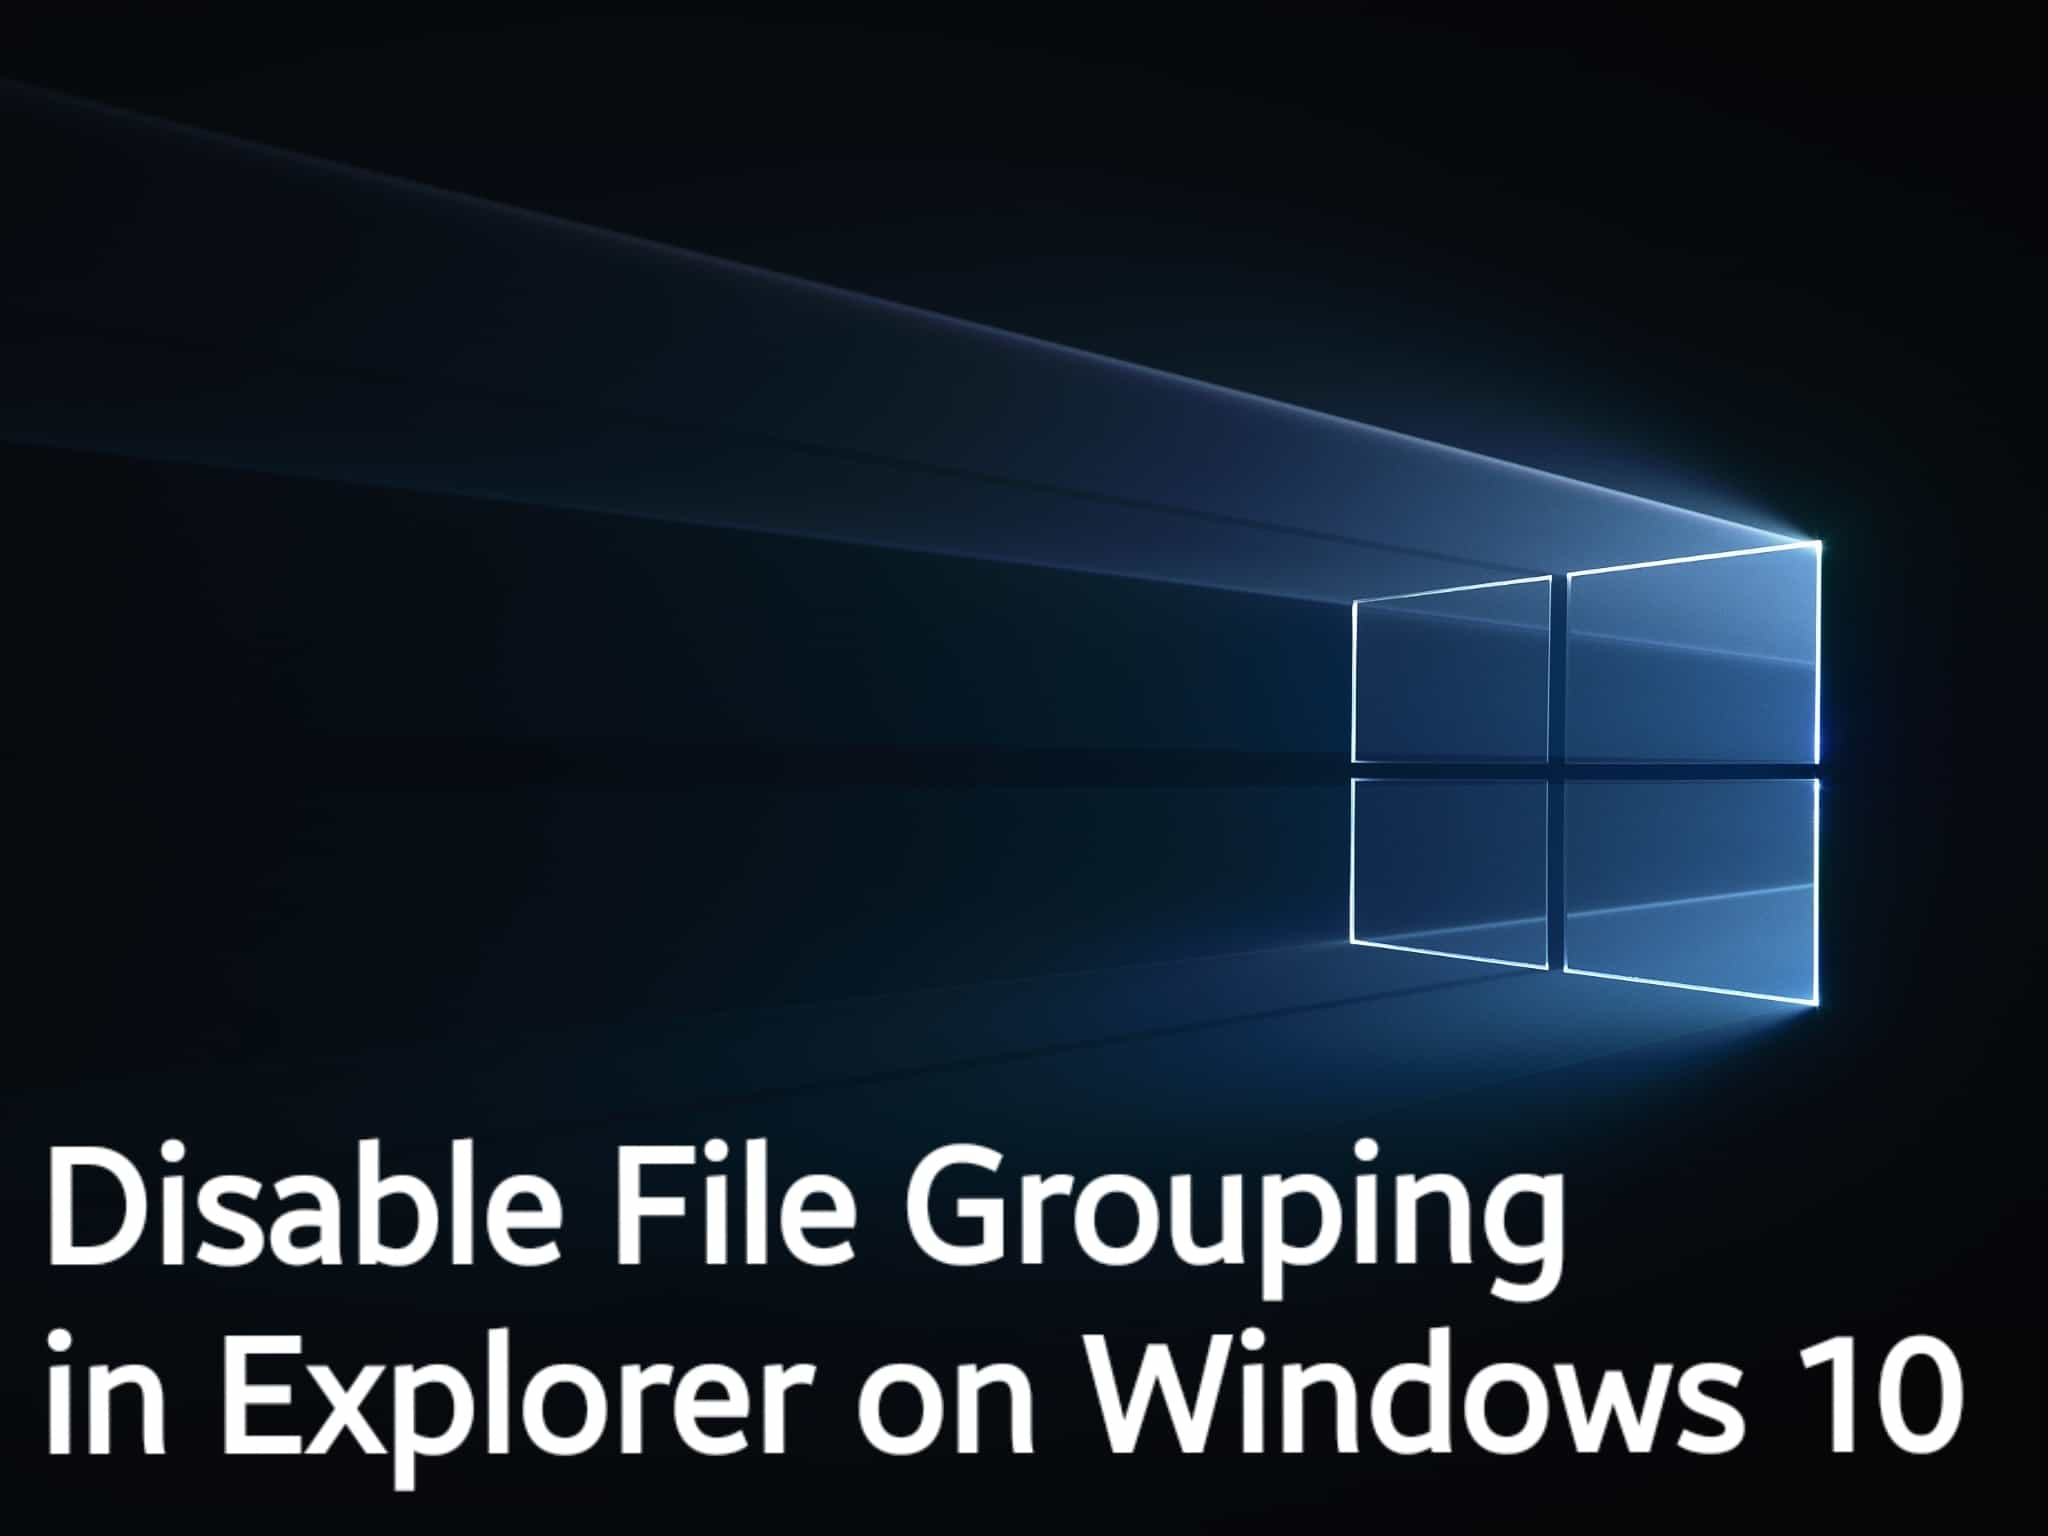 Disable File Grouping in Explorer on Windows 10